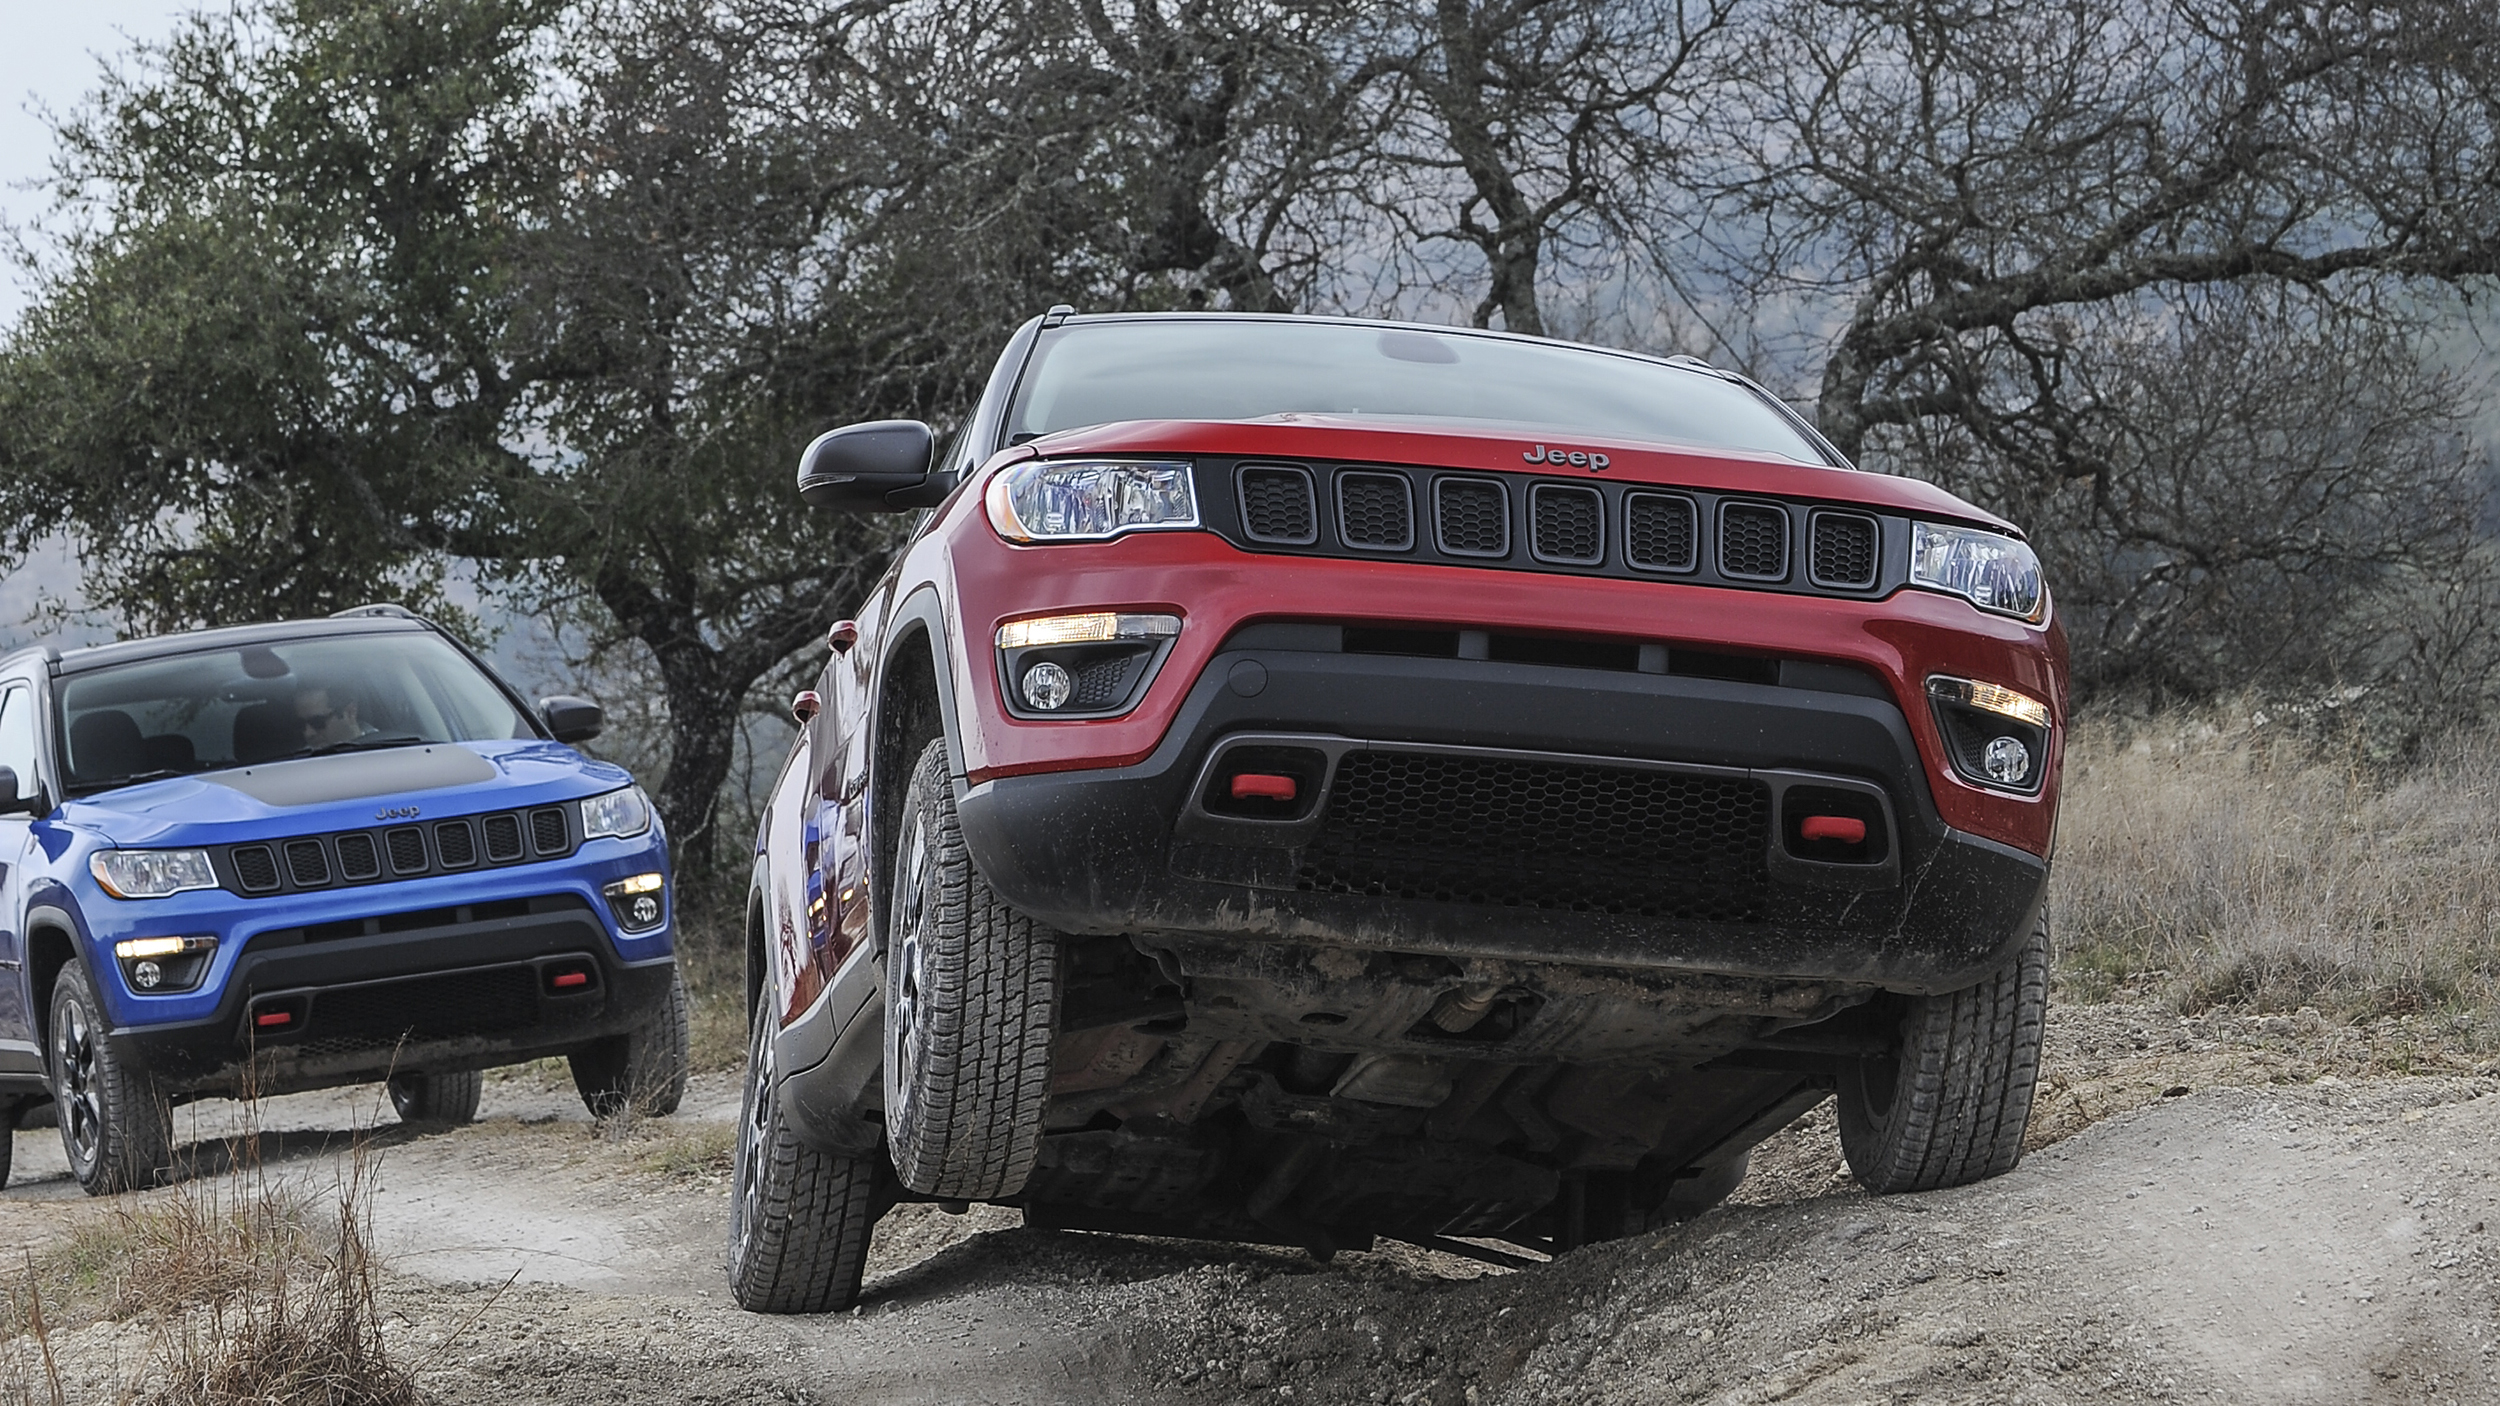 2018 jeep compass will exorcise memories of the old model brand boss says photos. Black Bedroom Furniture Sets. Home Design Ideas